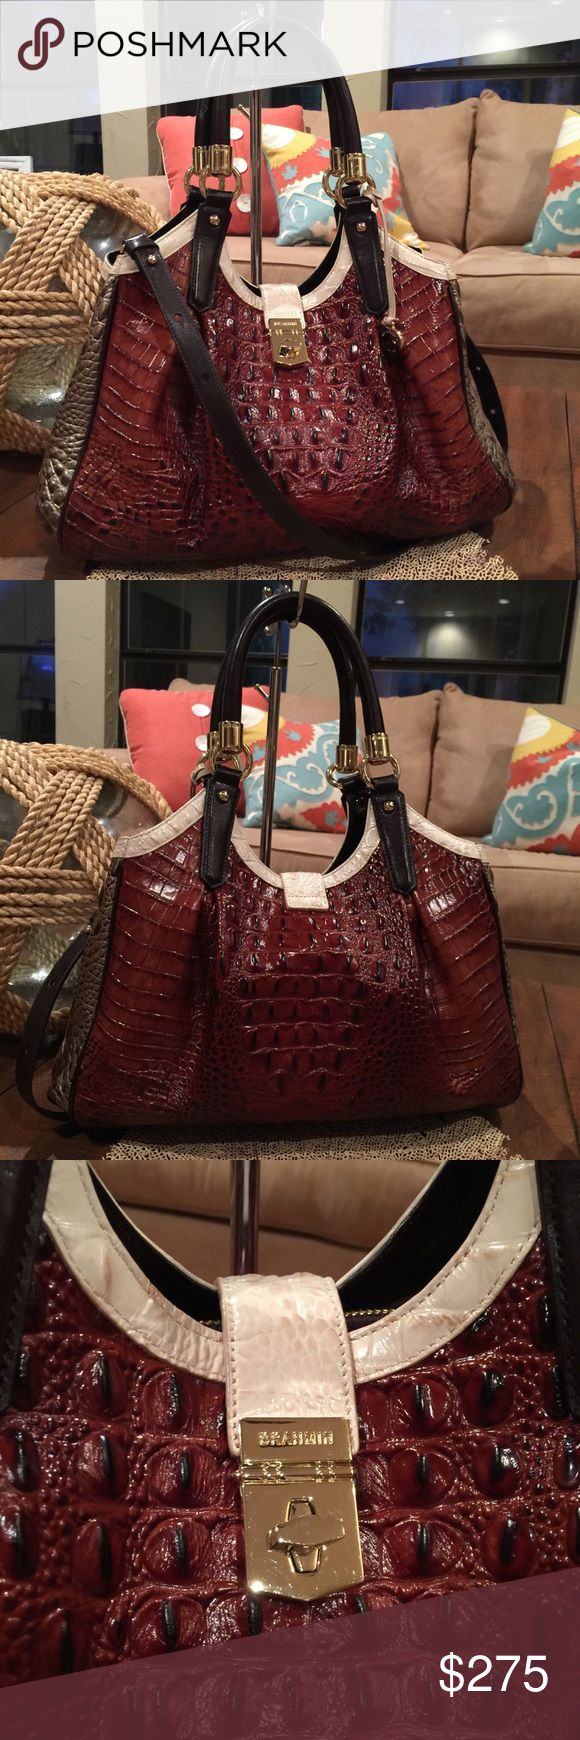 """🌴🌴BRAHMIN PECAN AZUMA ELISA HOBO🌴🌴 GORGEOUS FALL BAG!! Brahmin PECAN AZUMA ELISA HOBO Store Display. Retail $415 + tax ... so GREAT PRICE!! Sophisticated bag with Beautiful Croc embossing. Goldtone hardware! Feminine front and back pleats with a sweeping flared bottom - absolutely gorgeous!  * Handle hardware still has plastic protective film.  * Double handles, 8.5"""" drop - will fit over shoulder  * Fold over tab w/turn latch closure  * Inside zip &slip pockets w/center dividing zip…"""